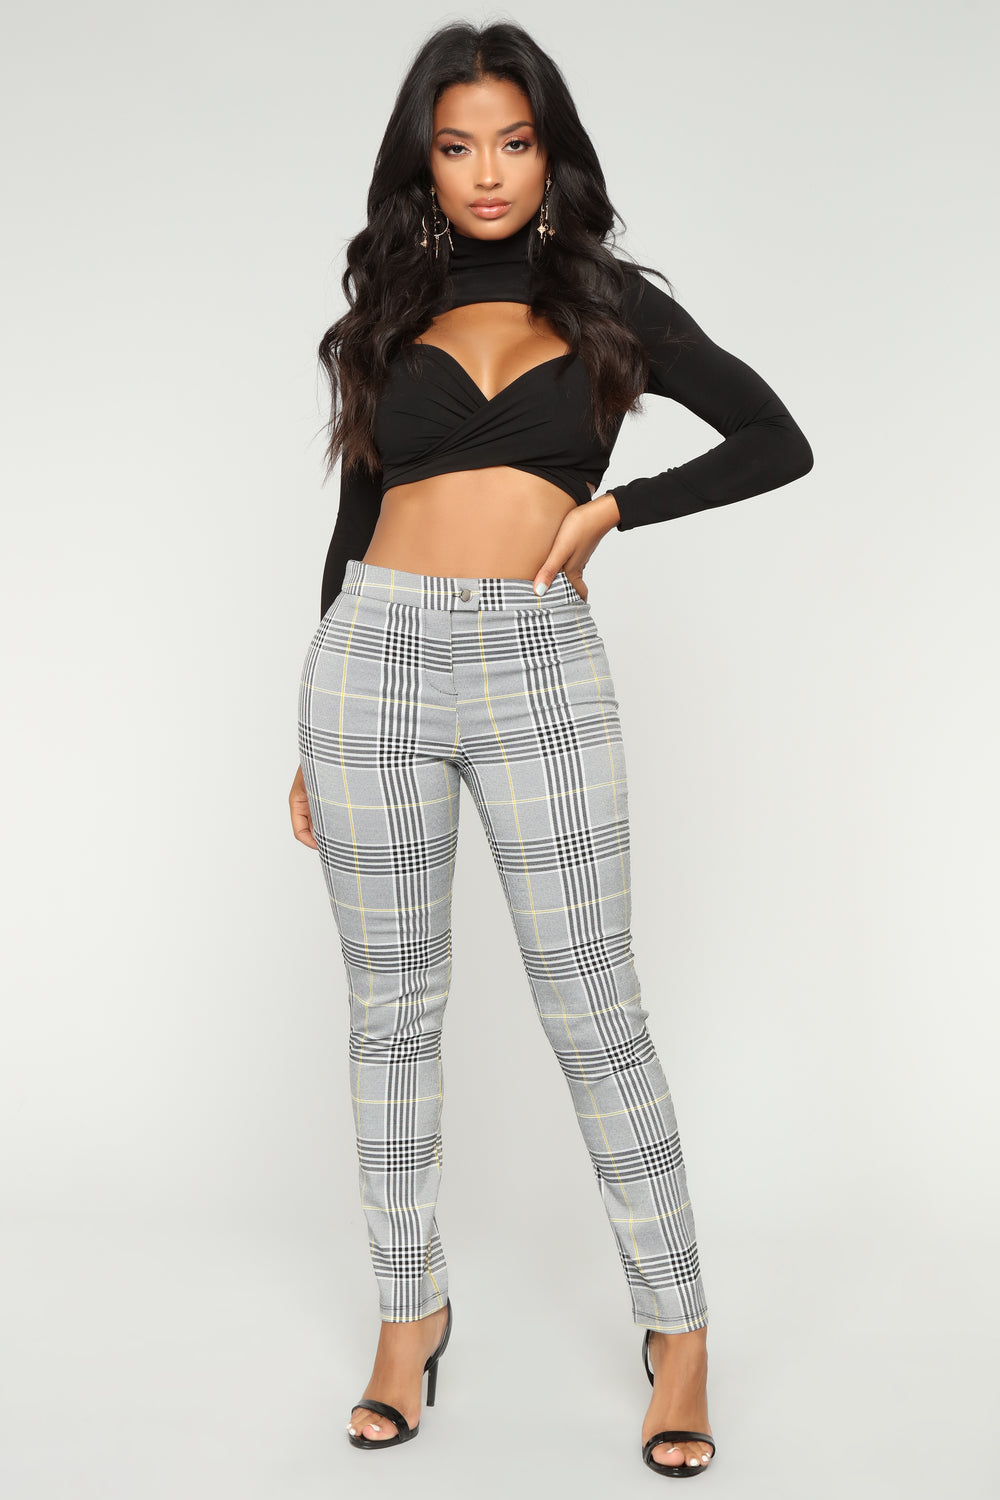 On That Grind Pants - Black/White